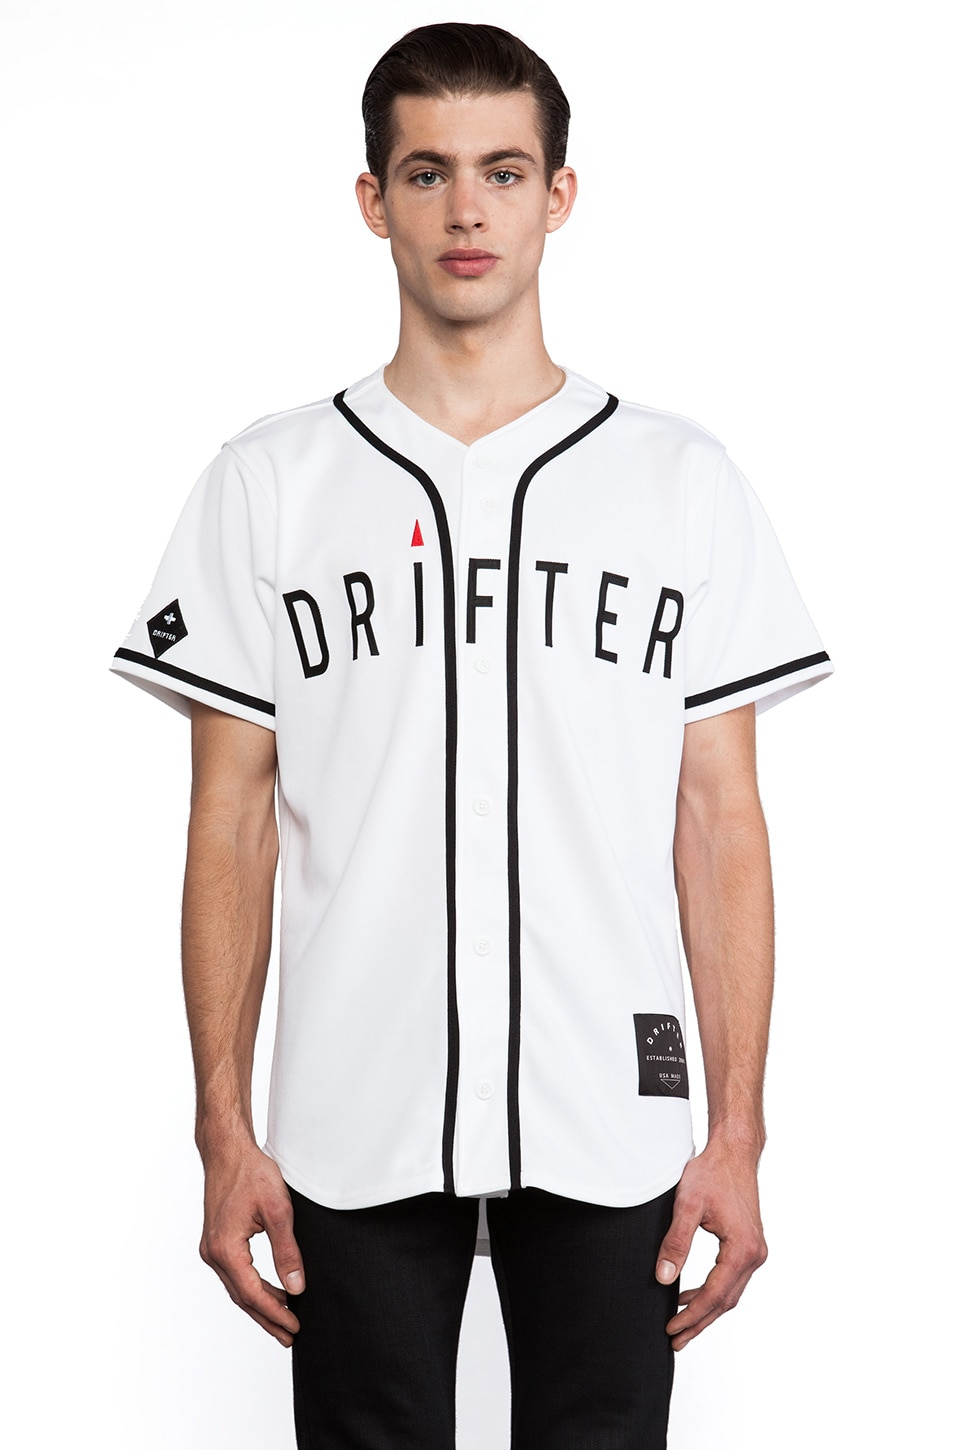 Drifter Diamond Baseball Tee in White